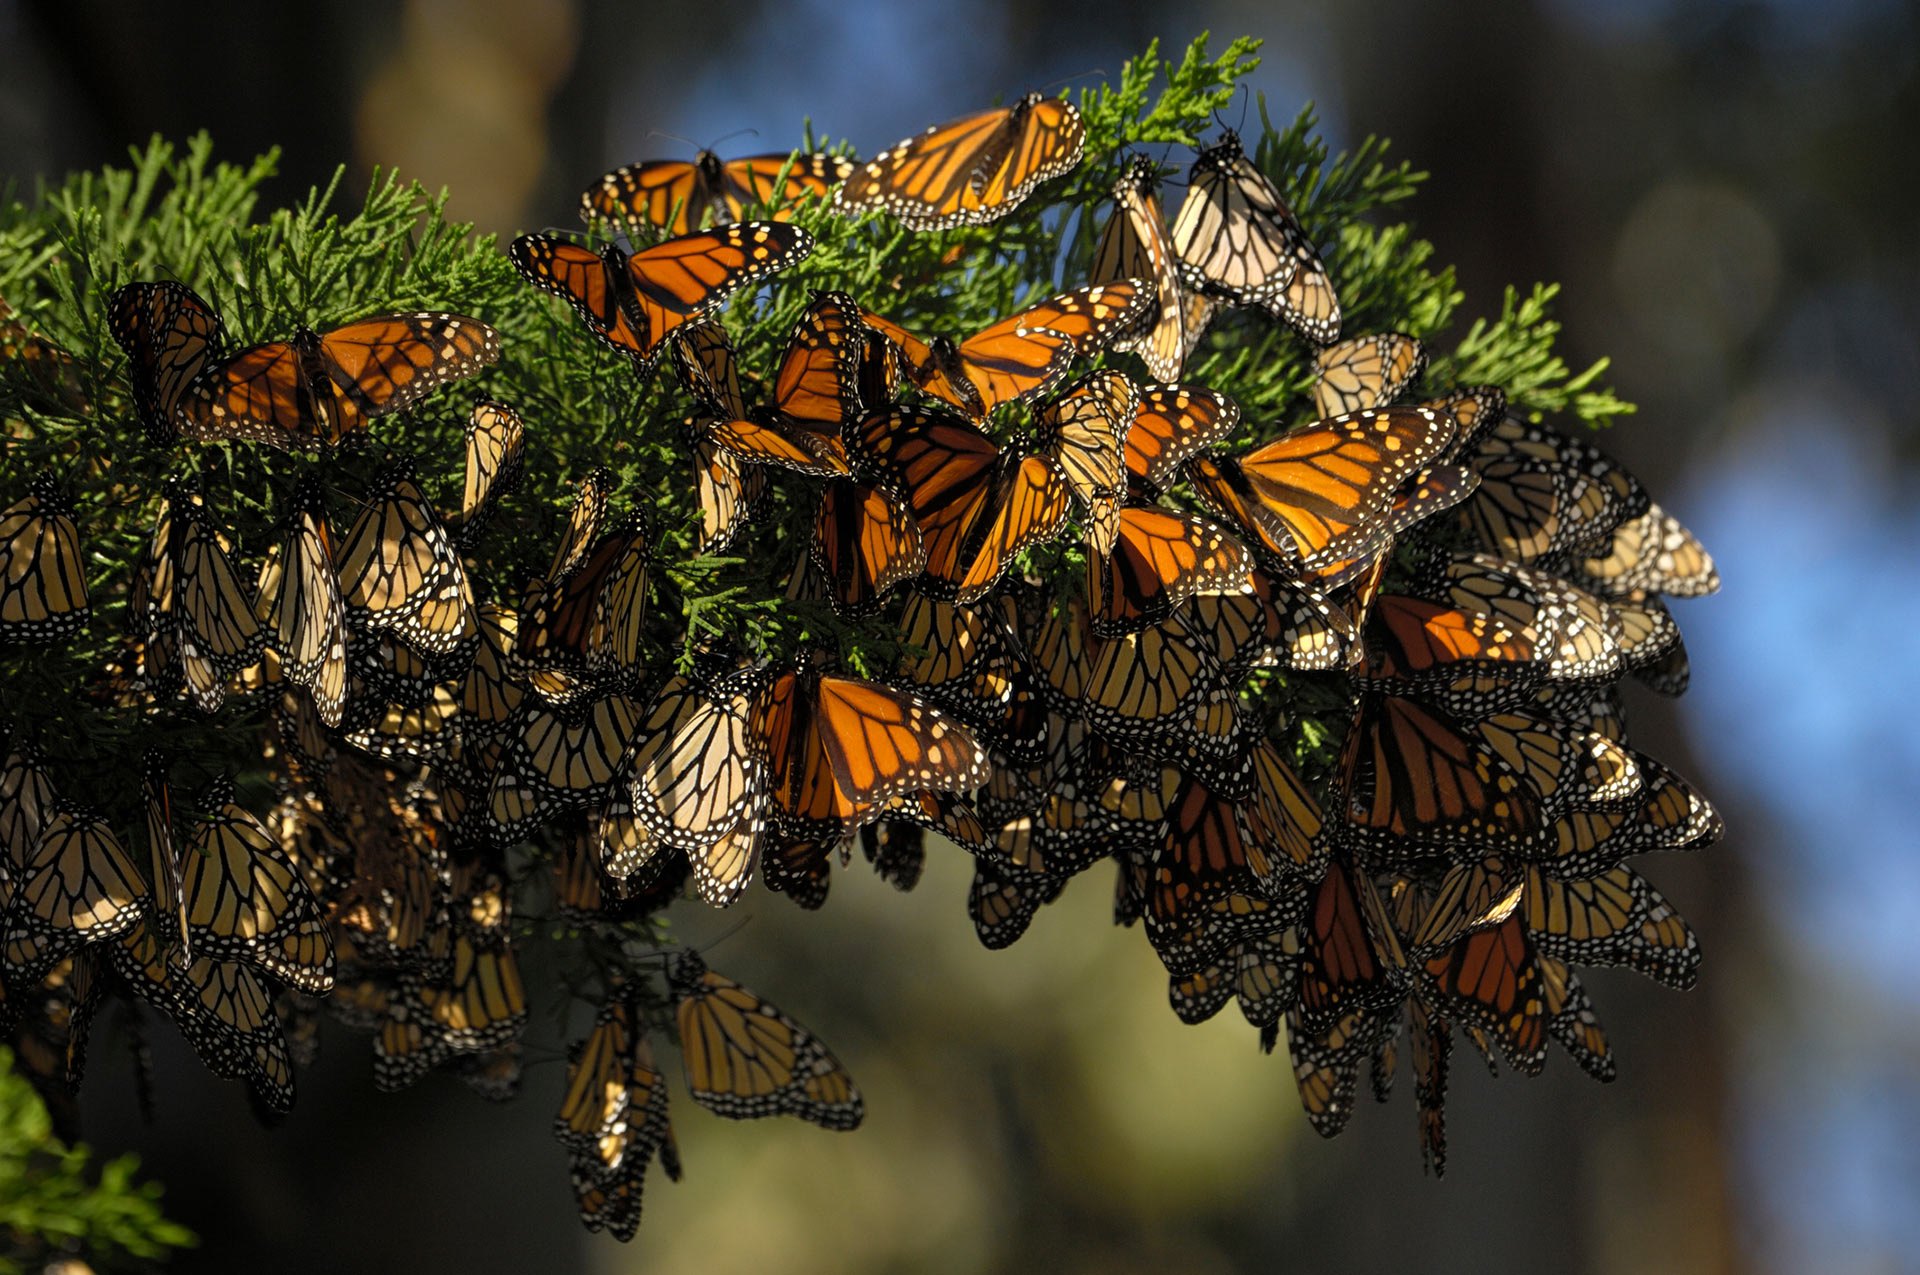 Devastating Downfall for Western Monarchs: A Harbinger of Things to Come?